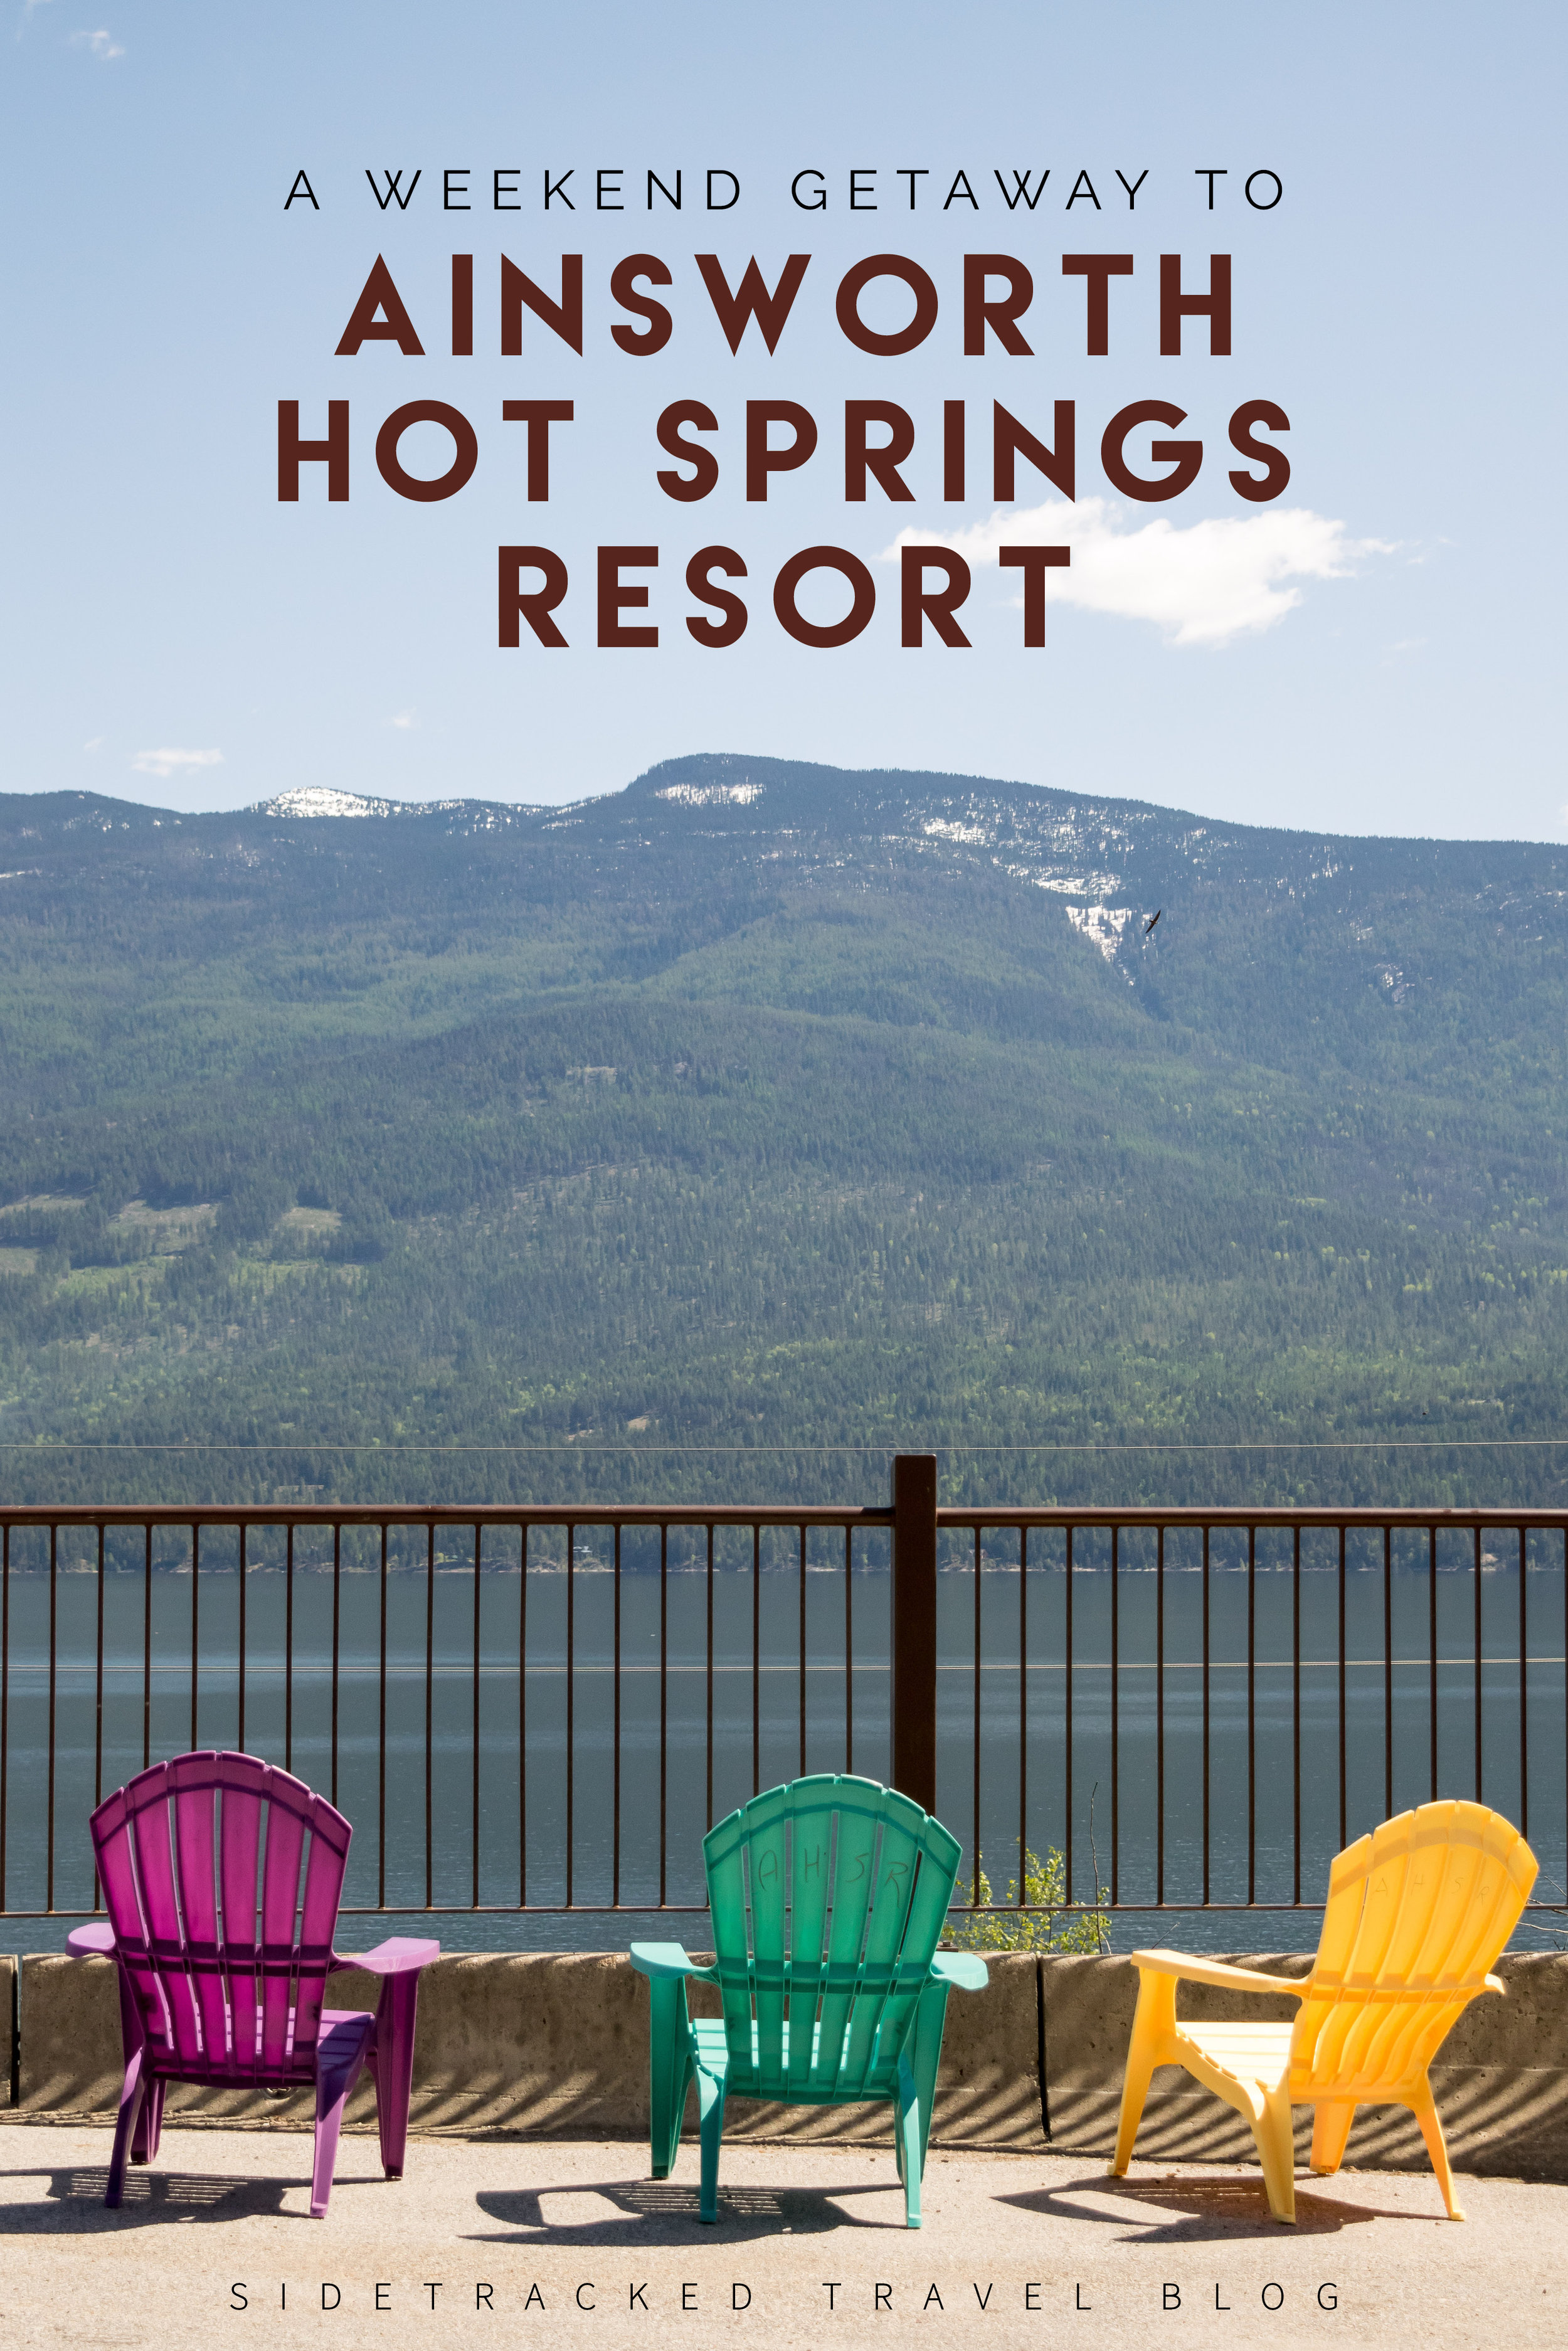 There are several hot springs worth visiting in the Kootenays (a mountainous region of southeastern British Columbia, Canada), but Ainsworth Hot Springs stands out as one of the best for a few reasons. This article explores why Ainsworth Hot Springs is a perfect weekend getaway for B.C. travelers.